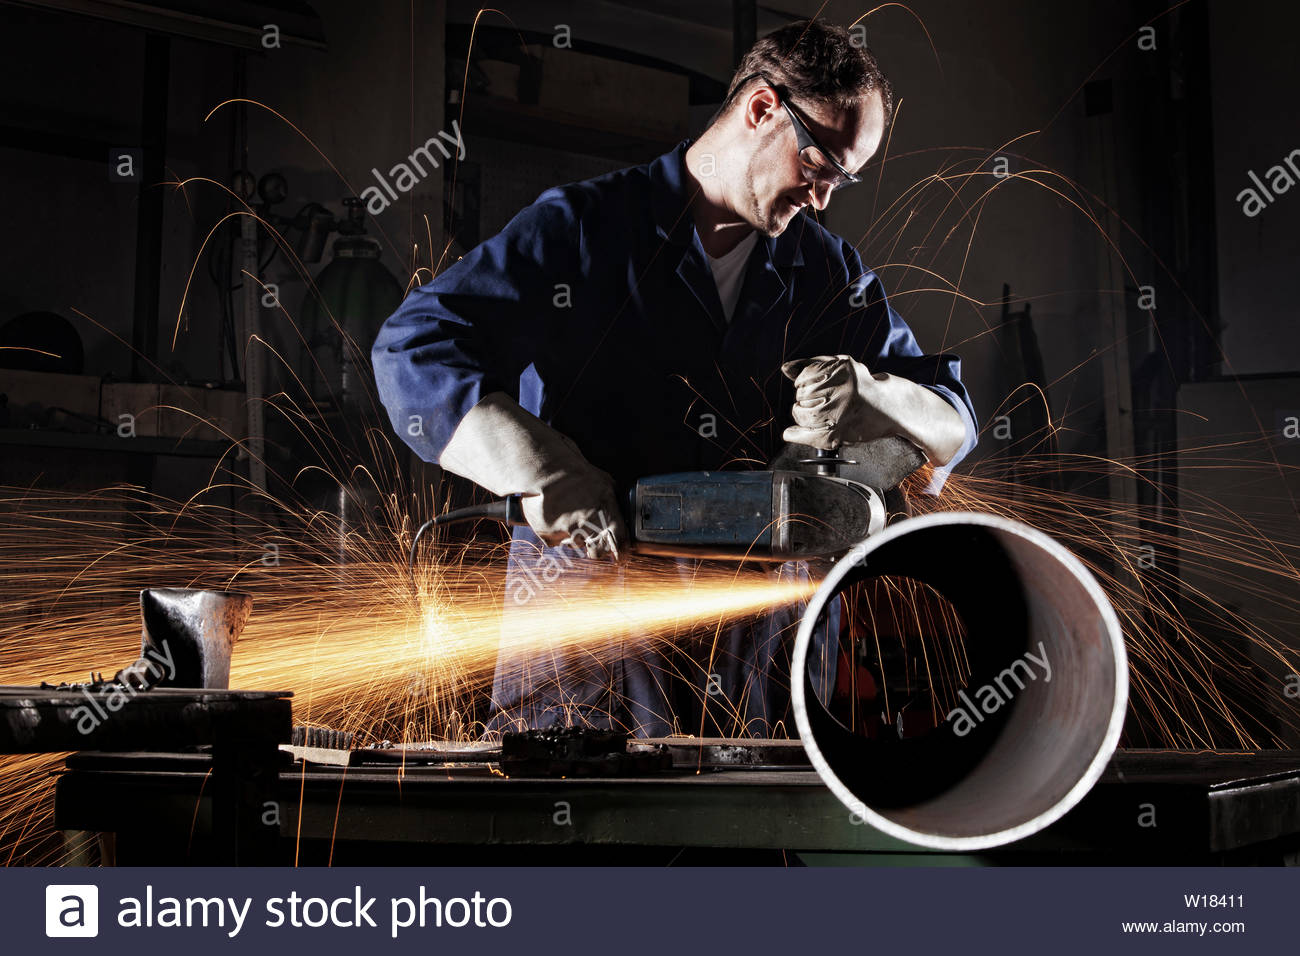 Heavy industry worker cutting steel pipe with angle grinder in workshop. - Stock Image